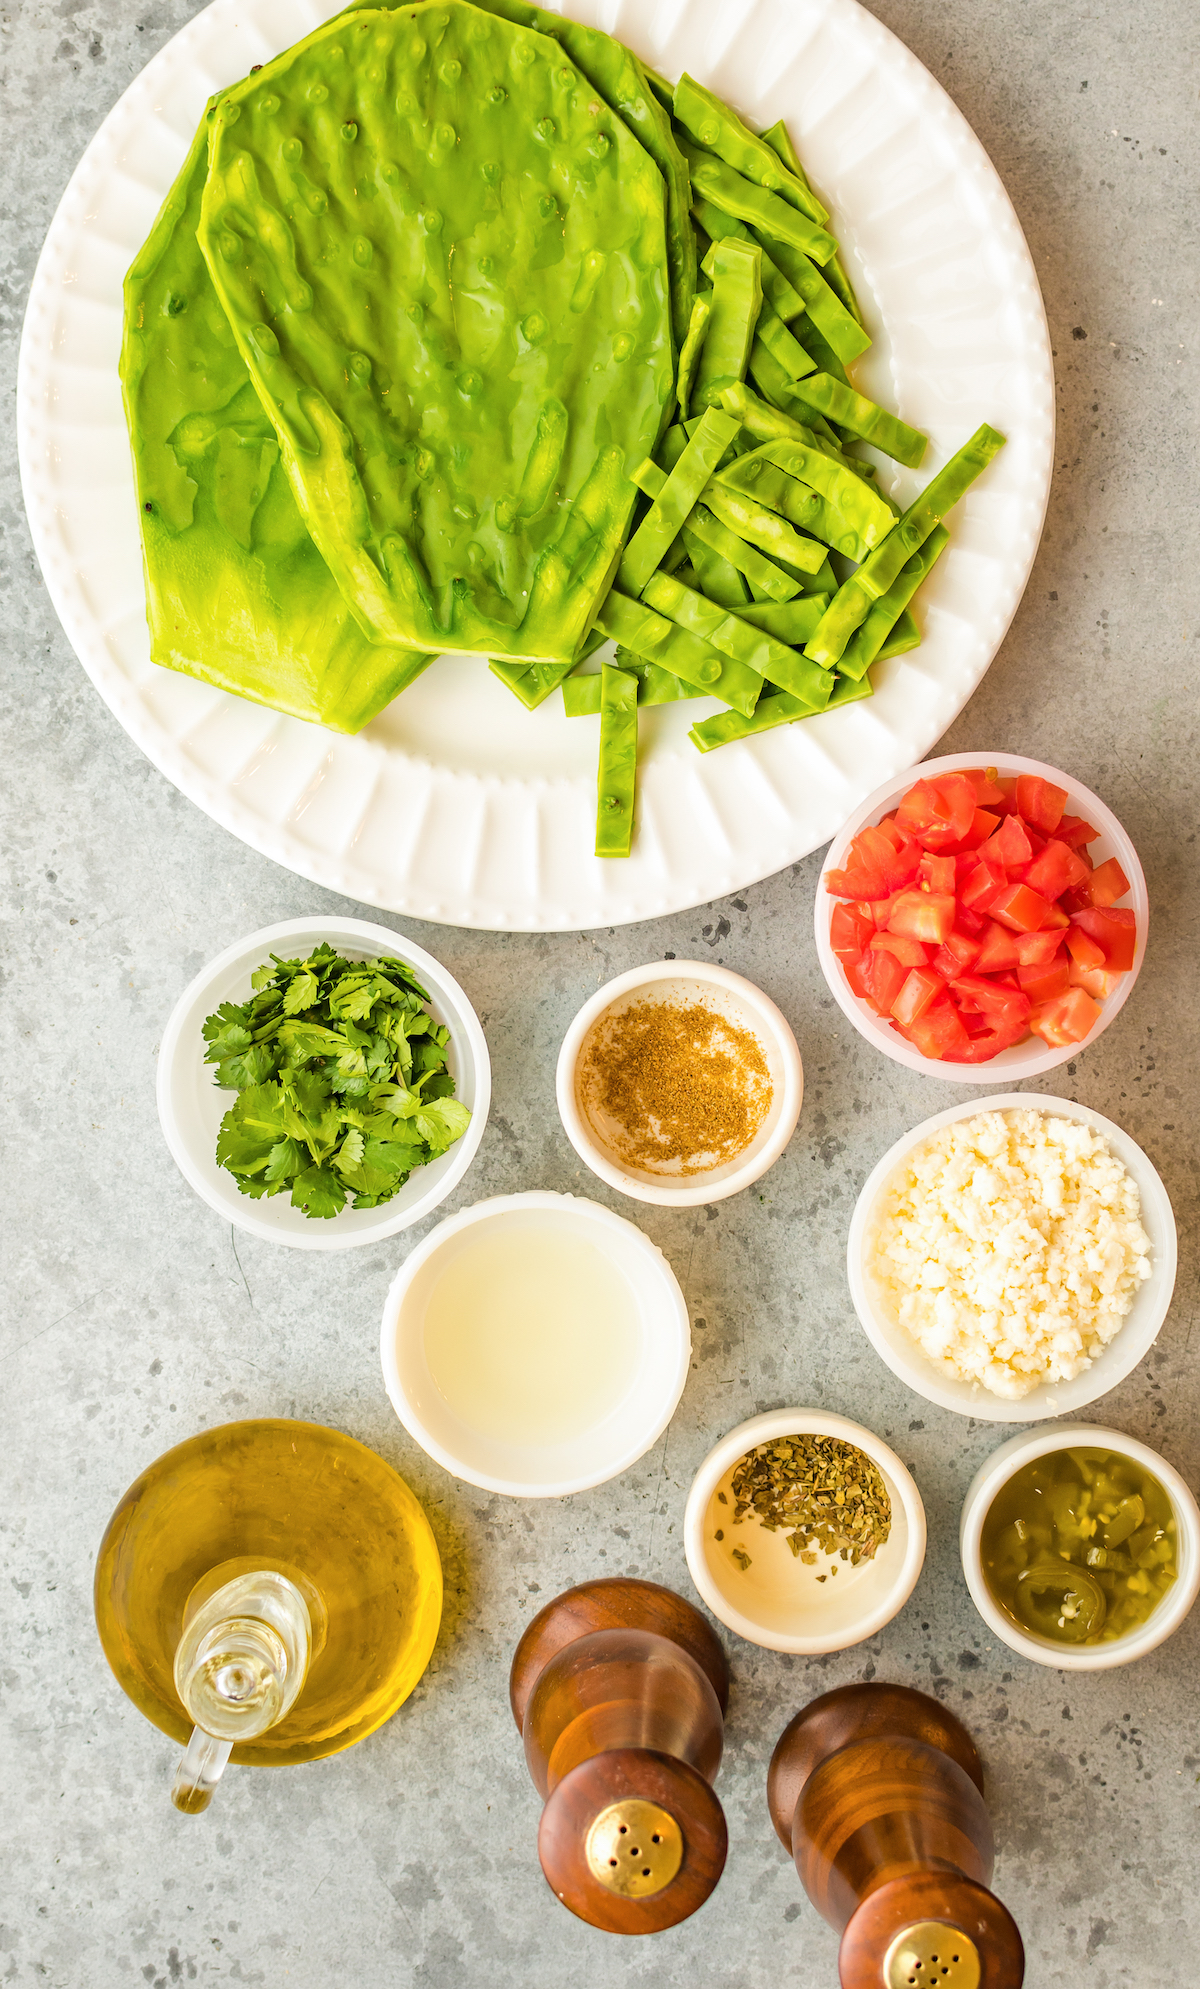 Overhead view of the ingredients for cactus salad arranged in white prep bowls: fresh cactus paddles, cilantro, cumin, chopped tomatoes, queso fresco, oregano, pickled jalapenos, salt, pepper, and olive oil.